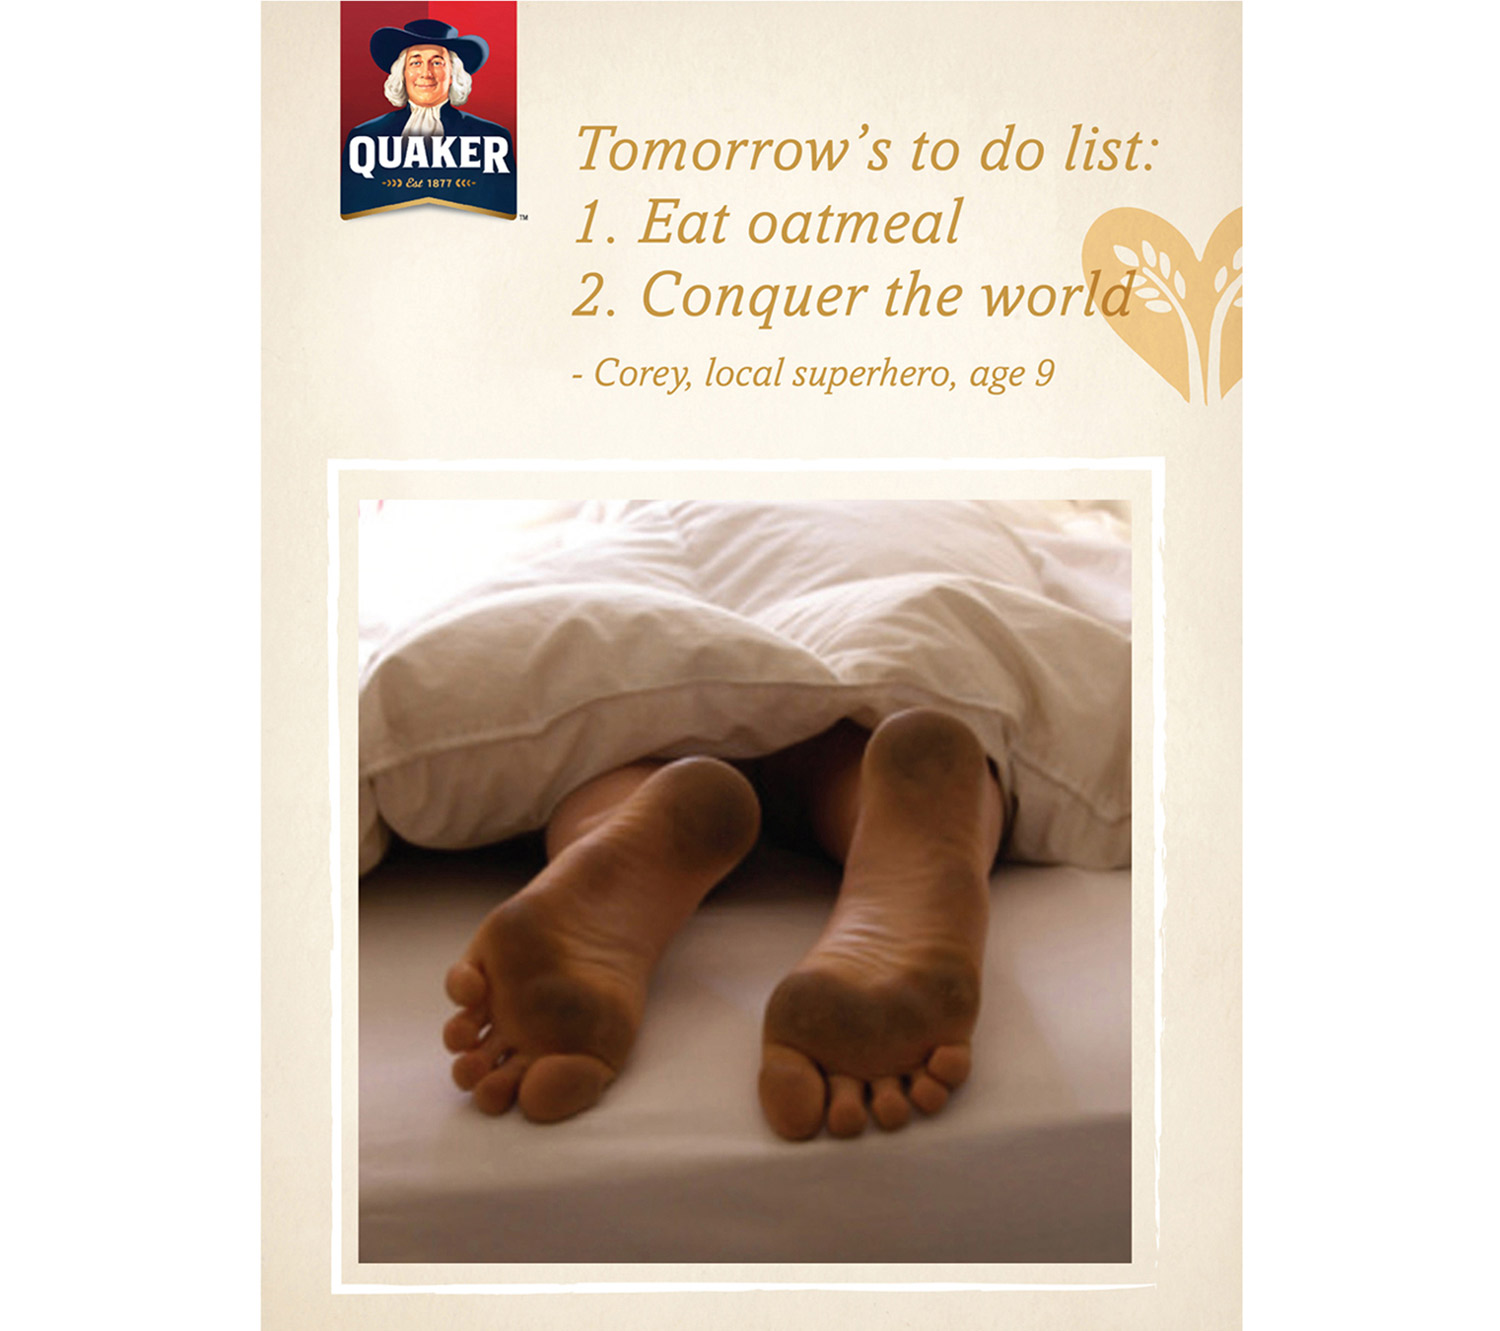 Quaker_ADS_with_quotes1_single1.jpg